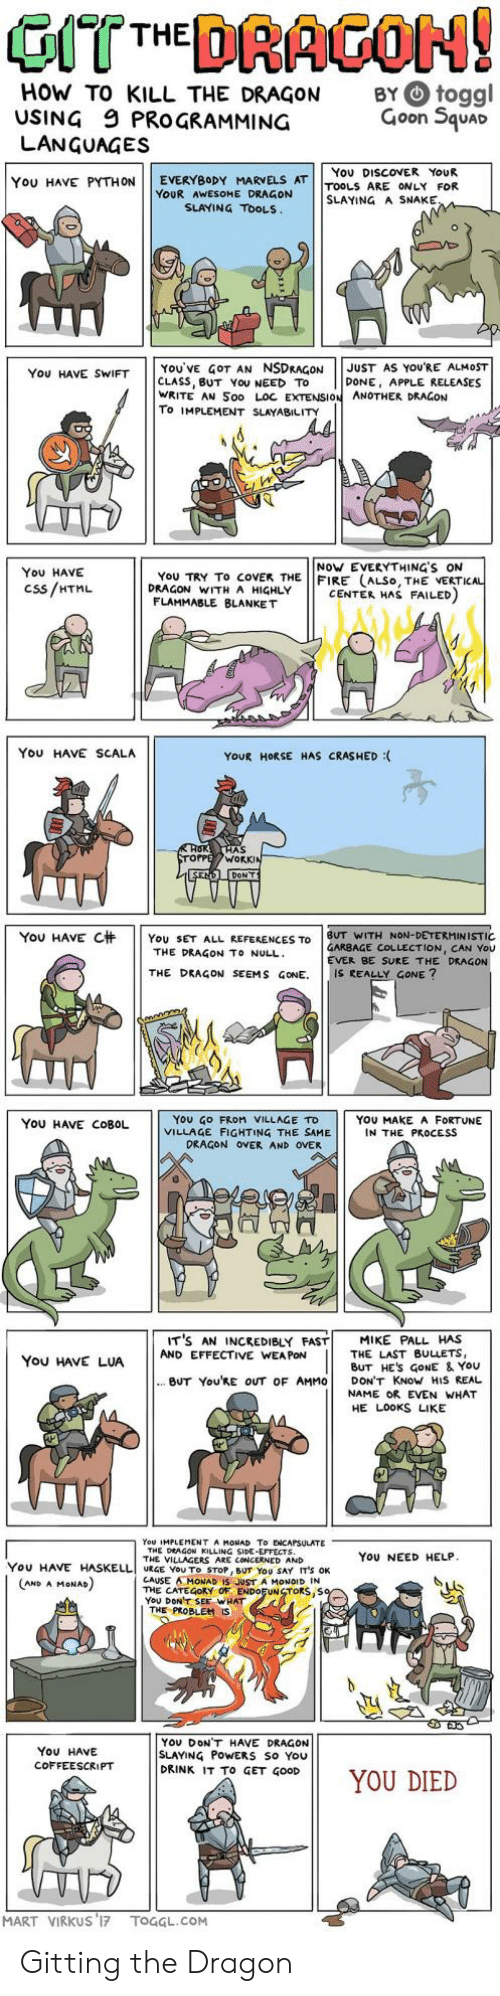 You Died: HOW TO KILL THE DRAGON  USING 9 PROGRAMMING  LANGUAGES  BY O toggl  Goon Squar  You DISCOVER YoUR  YOU HAVE PYTHON | | EVERYBODY MARVELS AT | |TOOLS ARE ONLY FOR  YOUR AWESOME DRAGON  SLAYING A SNAKE  SLAYING TOOLS  YOU'VE GOT AN NSDRAGONJUST AS YOURE ALMOST  CLASS, BUT YoU NEED TO  WRITE AN Soo LOC EXTENSION ANOTHER DRAGON  To IMPLEMENT SLAYABILITY  You HAVE SWIFT  DONE, APPLE RELEASES  NoW EVERYTHING'S ON  You HAVE  Css/HTML  YoU TRY To coVEK THE FIRE (ALSo, THE VERTI  DRAGON WITH A HIGHLY  CENTER HAS FAILED  FLAMMABLE BLANKET  You HAVE SCALA  YOUR HORSE HAS CRASHED :  AS  WORK  YOU HAVE C杄 | | YOU SET ALL REFERENCES TO | BUT WITH NON-DETERMINISTIC  GARBAGE COLLECTION, CAN You  EVER BE SURE THE DRAGON  THE DRAGON TO NULL  THE DRAGON SEEMS GONE. IS REALLY GONE?  YoU GO FRoM VILLAGE TD  VILLAGE FIGHTING THE SAME  YOU HAVE COBOL  YOU MAKE A FORTUNE  IN THE PROCESS  DRAGON OVER AND OVER  IT'S AN INCREDIBLY FAST! MIKE PALL HAS  You HAVE LUAAND EFFECTIVE WANE ES  THE LAST BULLETS,  BUT HES GoNE & YoU  BUT You'RE OUT OF AMMO DON'T KNoW HIS REAL  NAME OR EVEN WHAT  HE LOOKS LIKE  You IMPLEMENT A MONAD To ENCAPSULATE  THE DEAGON KILLING SIDE-EFFECTS  THE VILLAGERS ARE CONCERNED AND  YoU NEED HELP  YOU HAVE HASELLI URGE YOU To STOP, BUT YOU SAY IT'S OK  CAUSE AMONAD IS JUST A MONOID IN  THE CATEGORY OF ENDOFUNSTORS,S  YoU DONT SEE WHAT  AND A MoNAD  THE PROBLEM  YOU DONT HAVE DRAGON  SLAYING PoWERS So You  DRINK IT To GET GOOD  ON11 YOU DIED  You HAVE  COFFEESCRIPT  MART VIRKUS 17 TOGGL.COM Gitting the Dragon